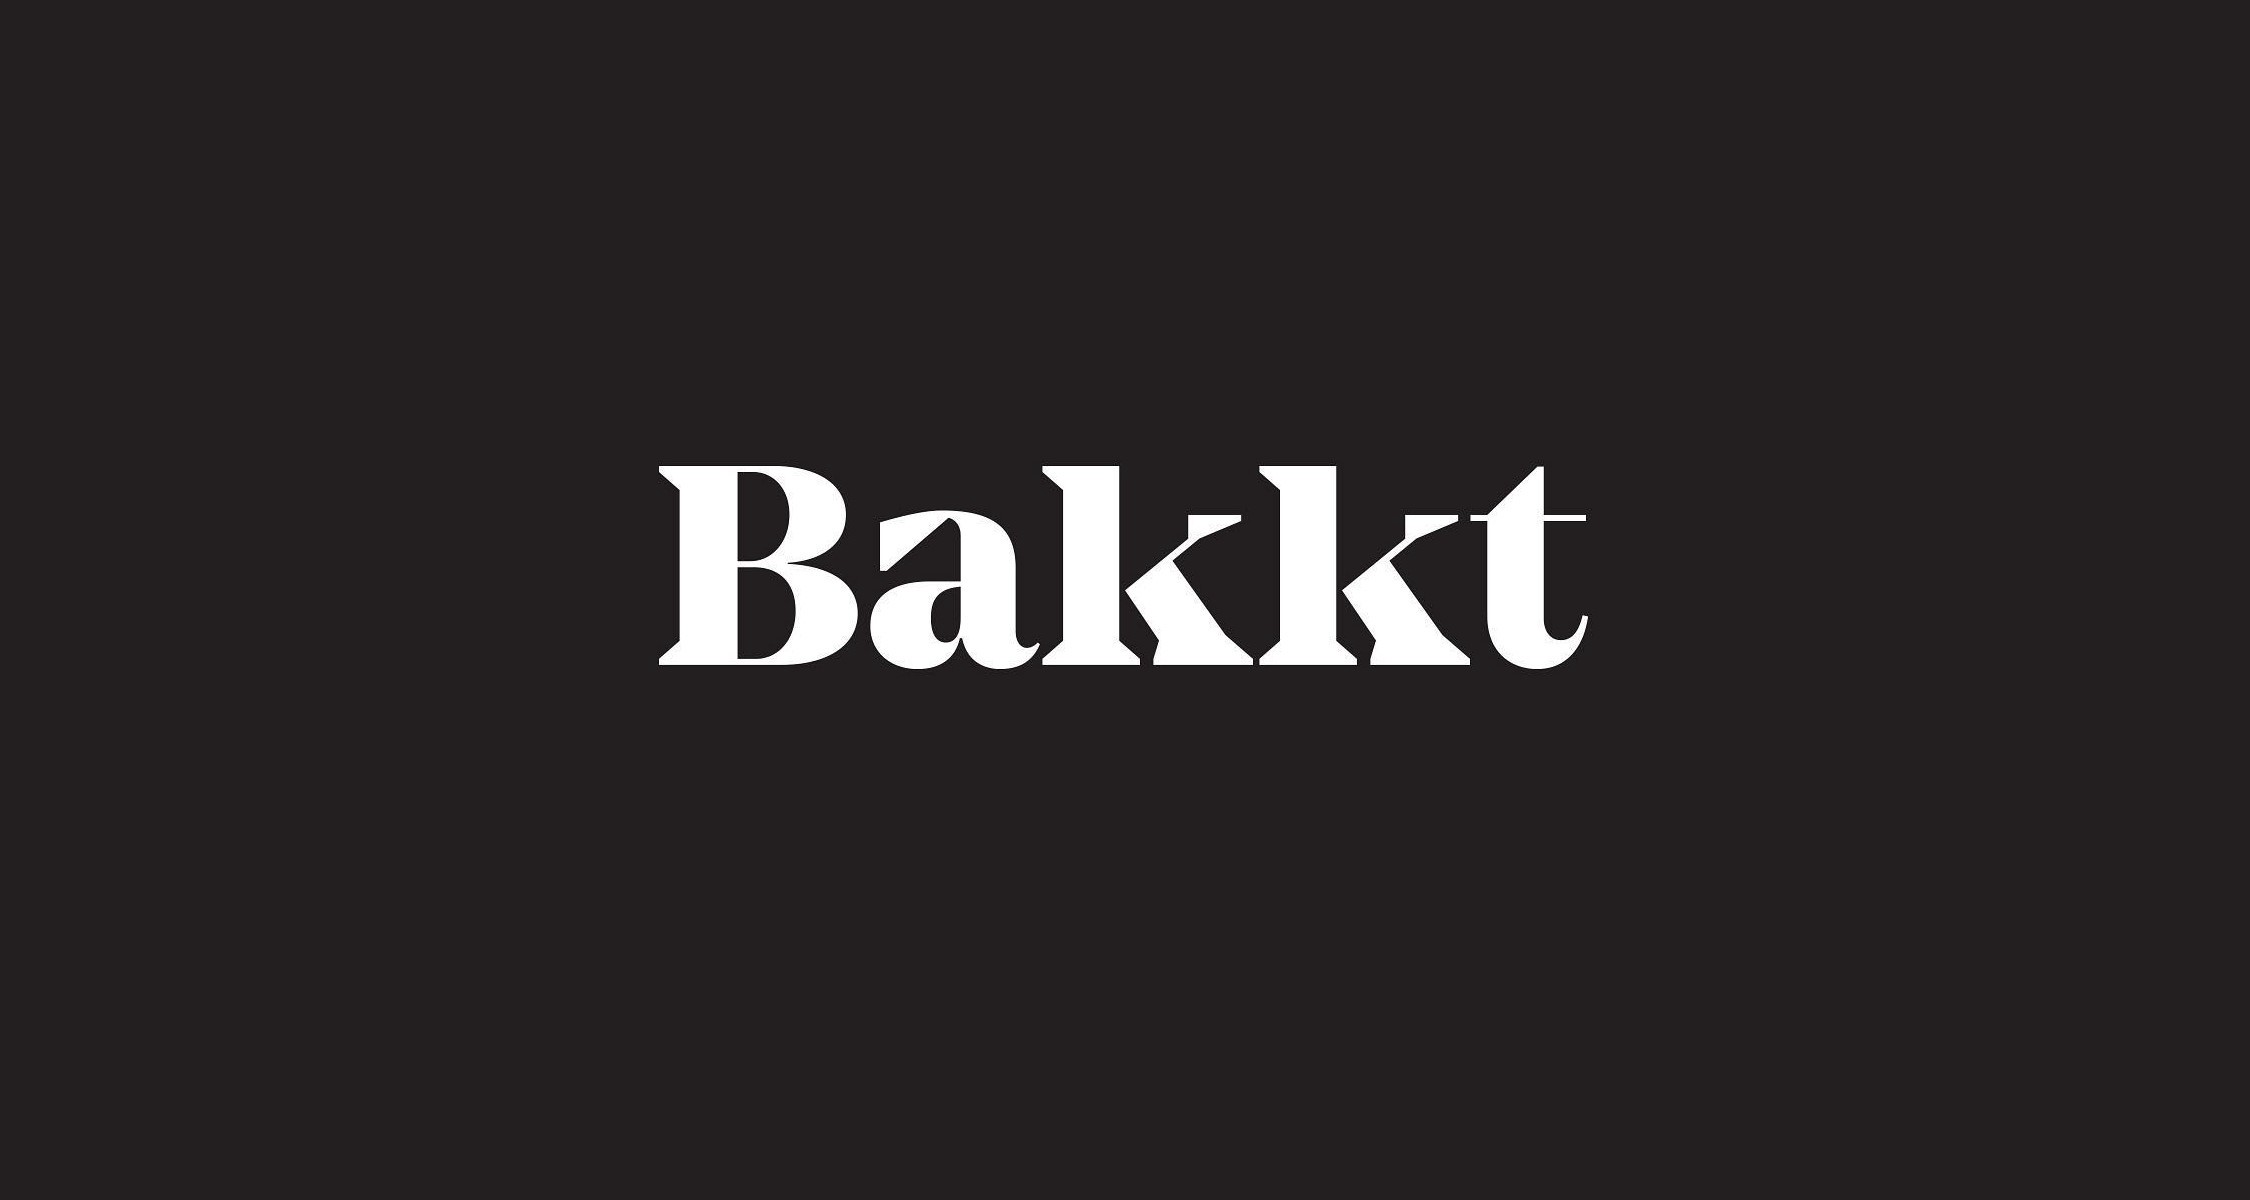 Bakkt CEO Kelly Loeffler Steps Down to Become a Georgia Senator